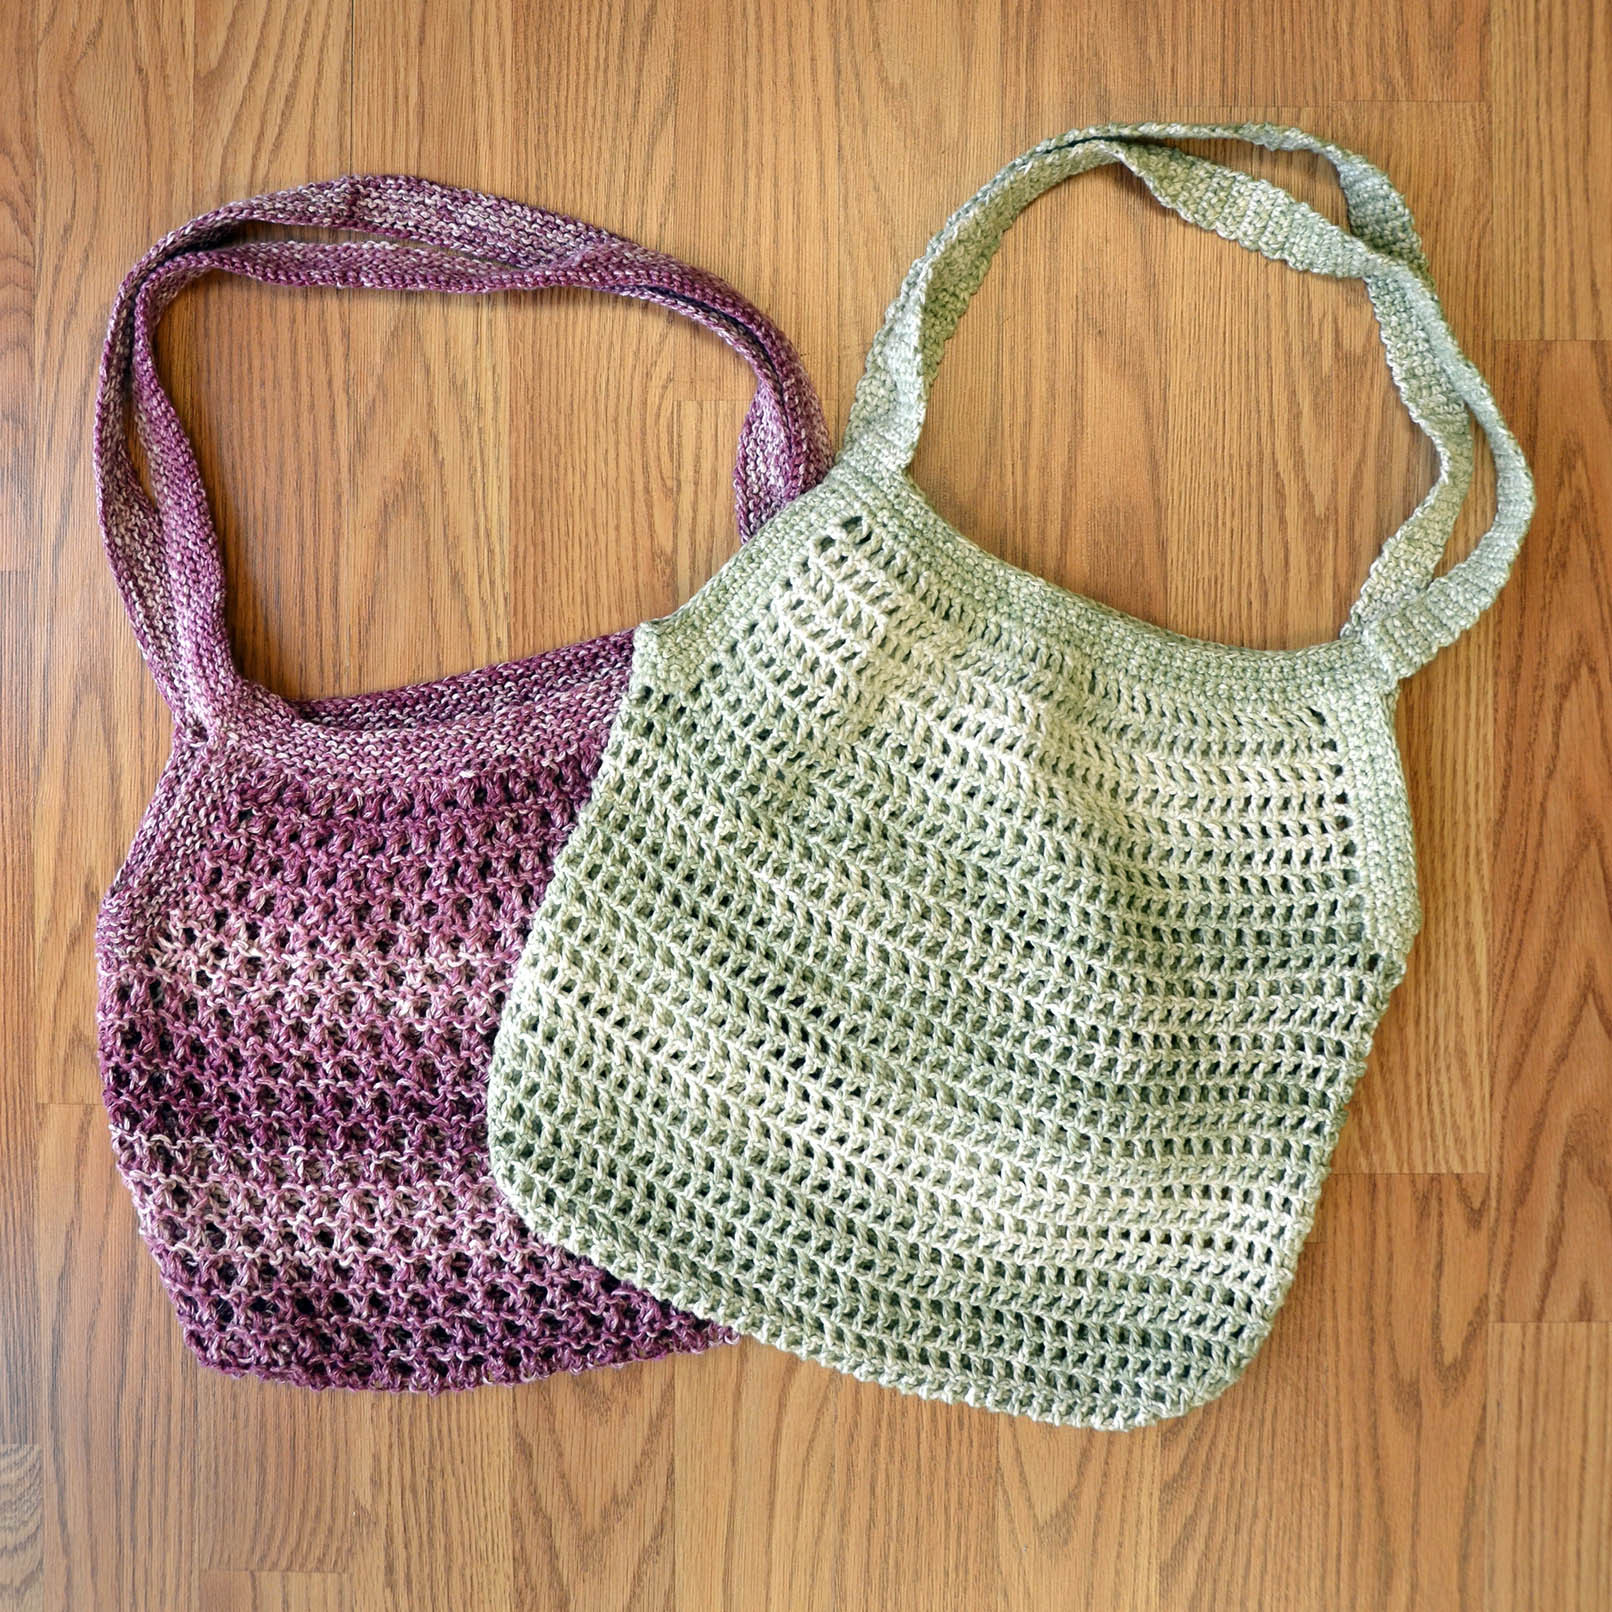 Beautiful Free Pattern Friday – Knit and Crochet Market Bags Knitting and Crochet Patterns Of Luxury Simple Knitting Patterns 8 Crochet and Knit Knitting and Crochet Patterns